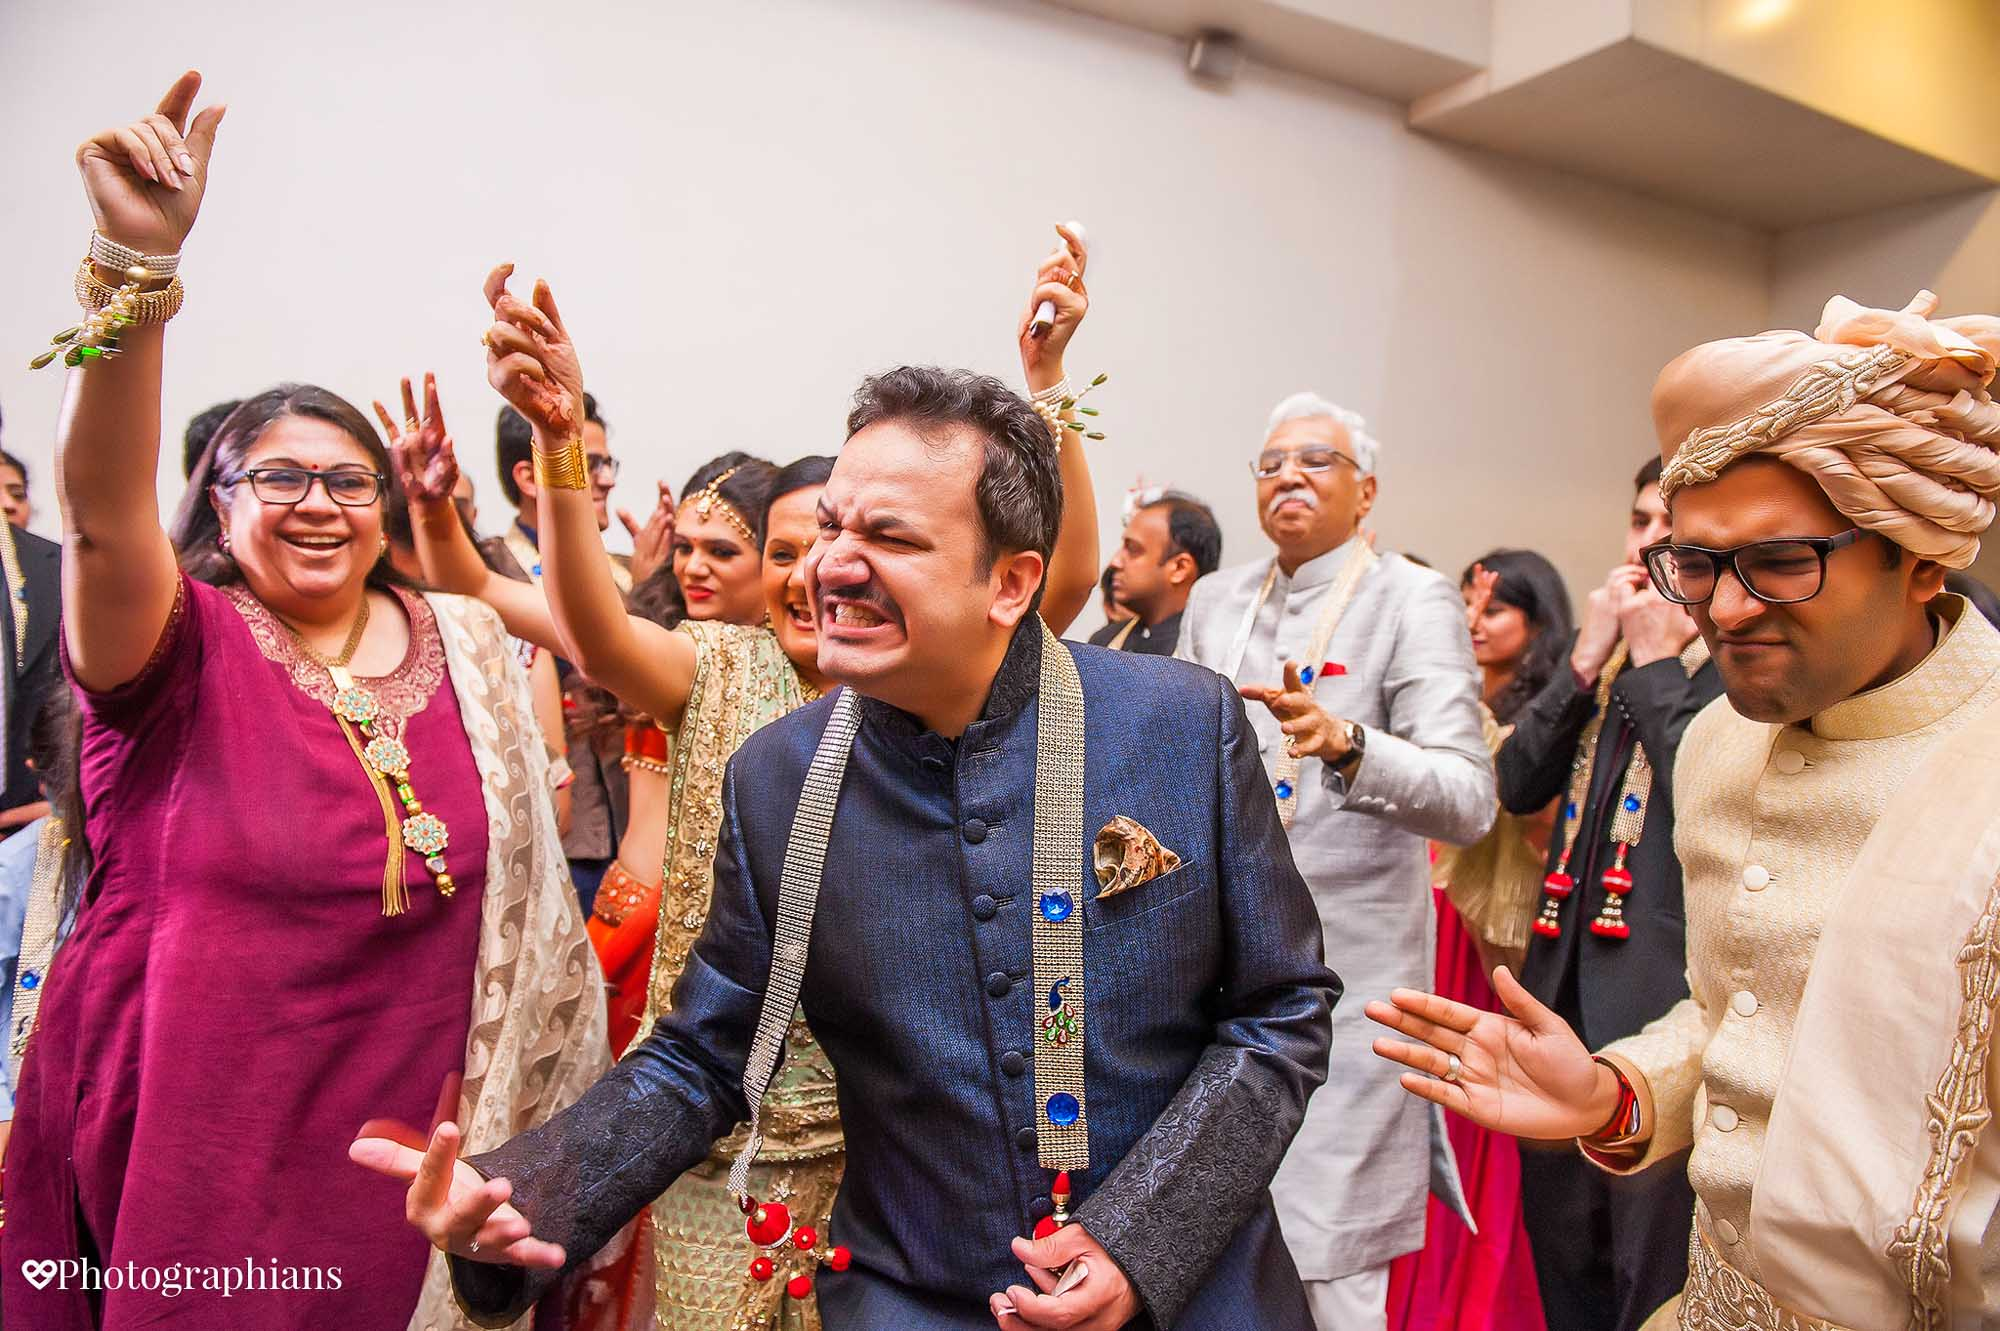 Punjabi_Marwari_Wedding_Kolkata_Photographians_-VIDHI-181